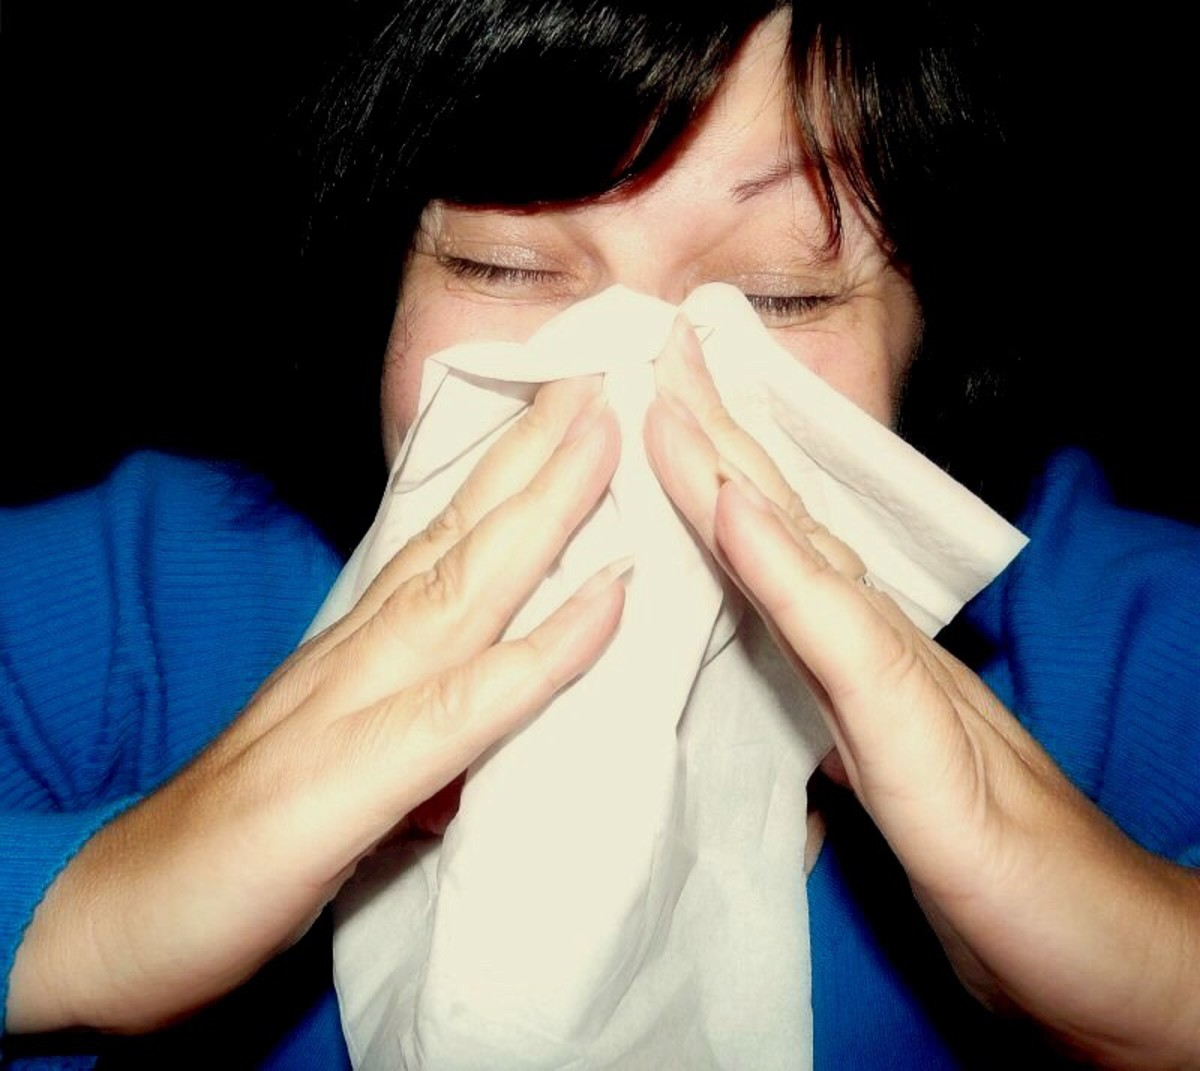 Sneezes and Sneezing - Causes, Facts, Myths and Mysteries